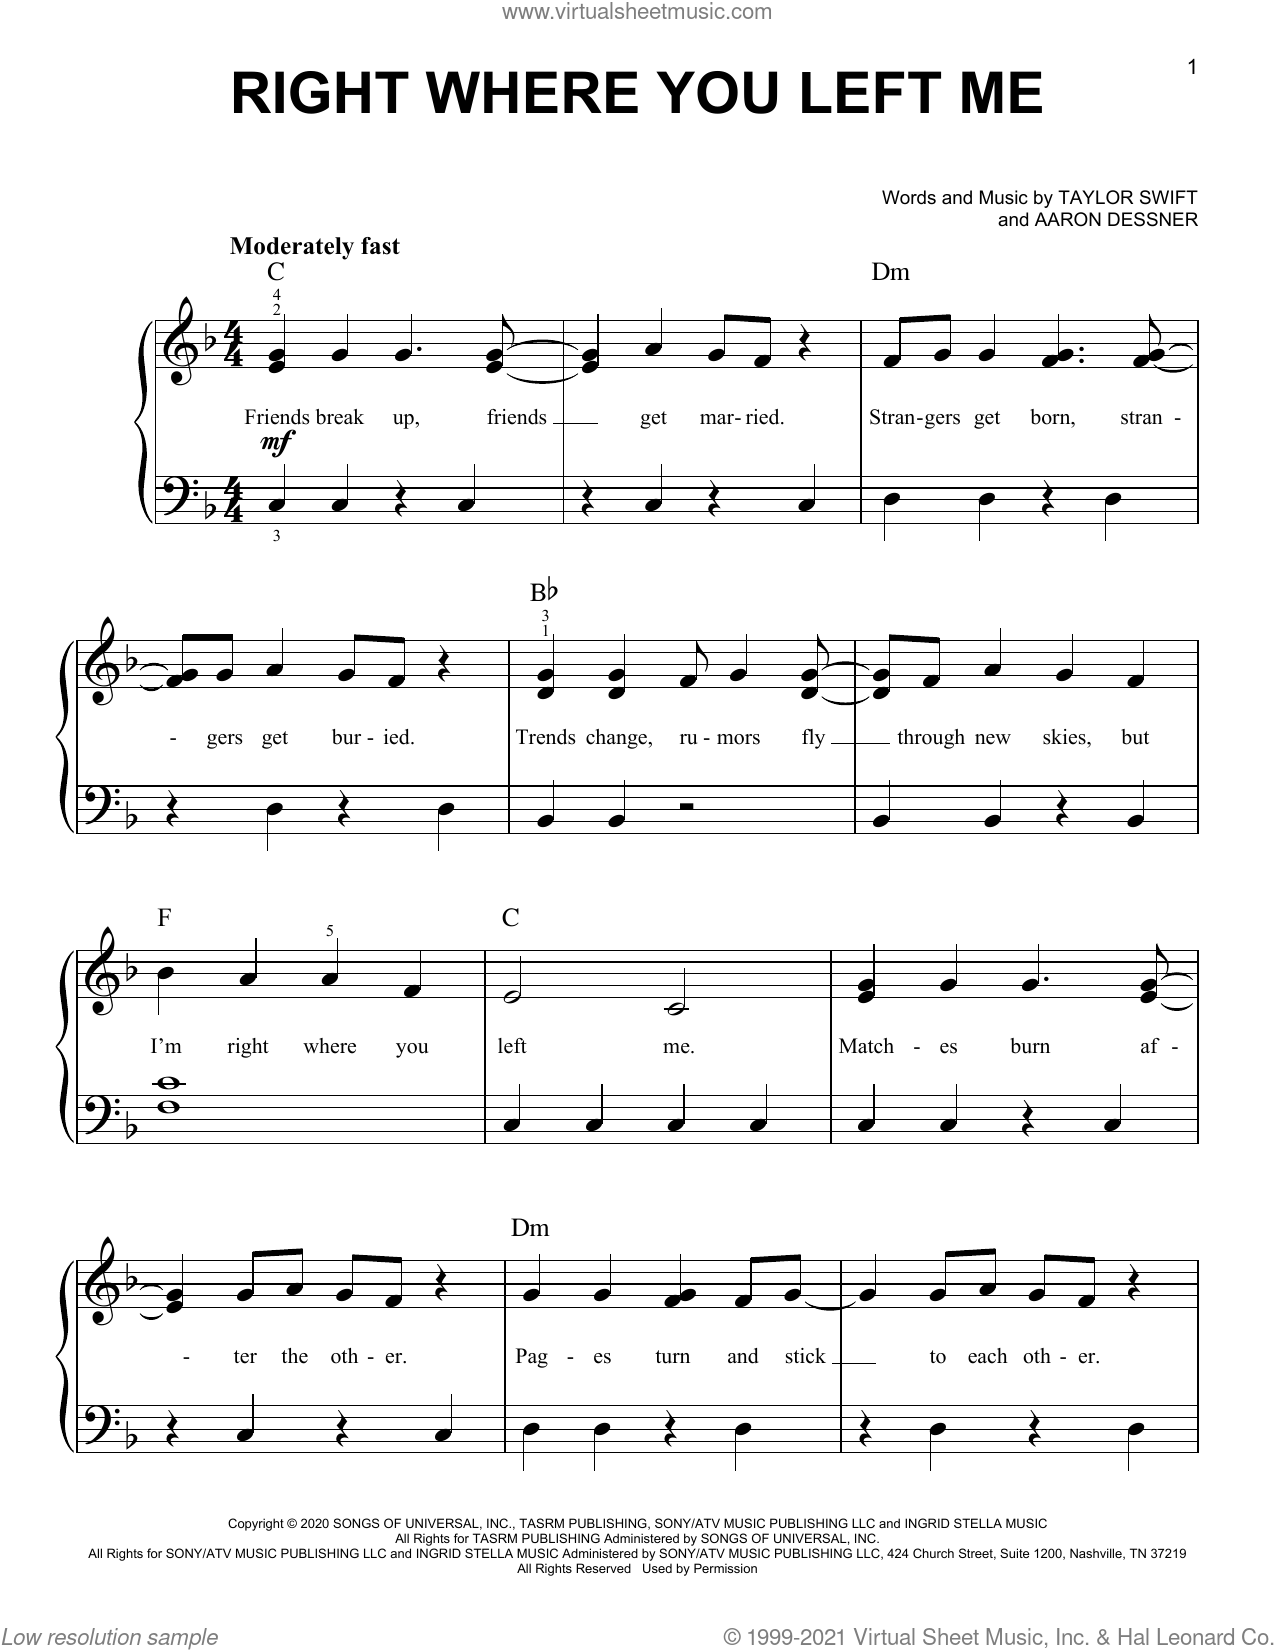 right where you left me sheet music for piano solo by Taylor Swift and Aaron Dessner, easy skill level